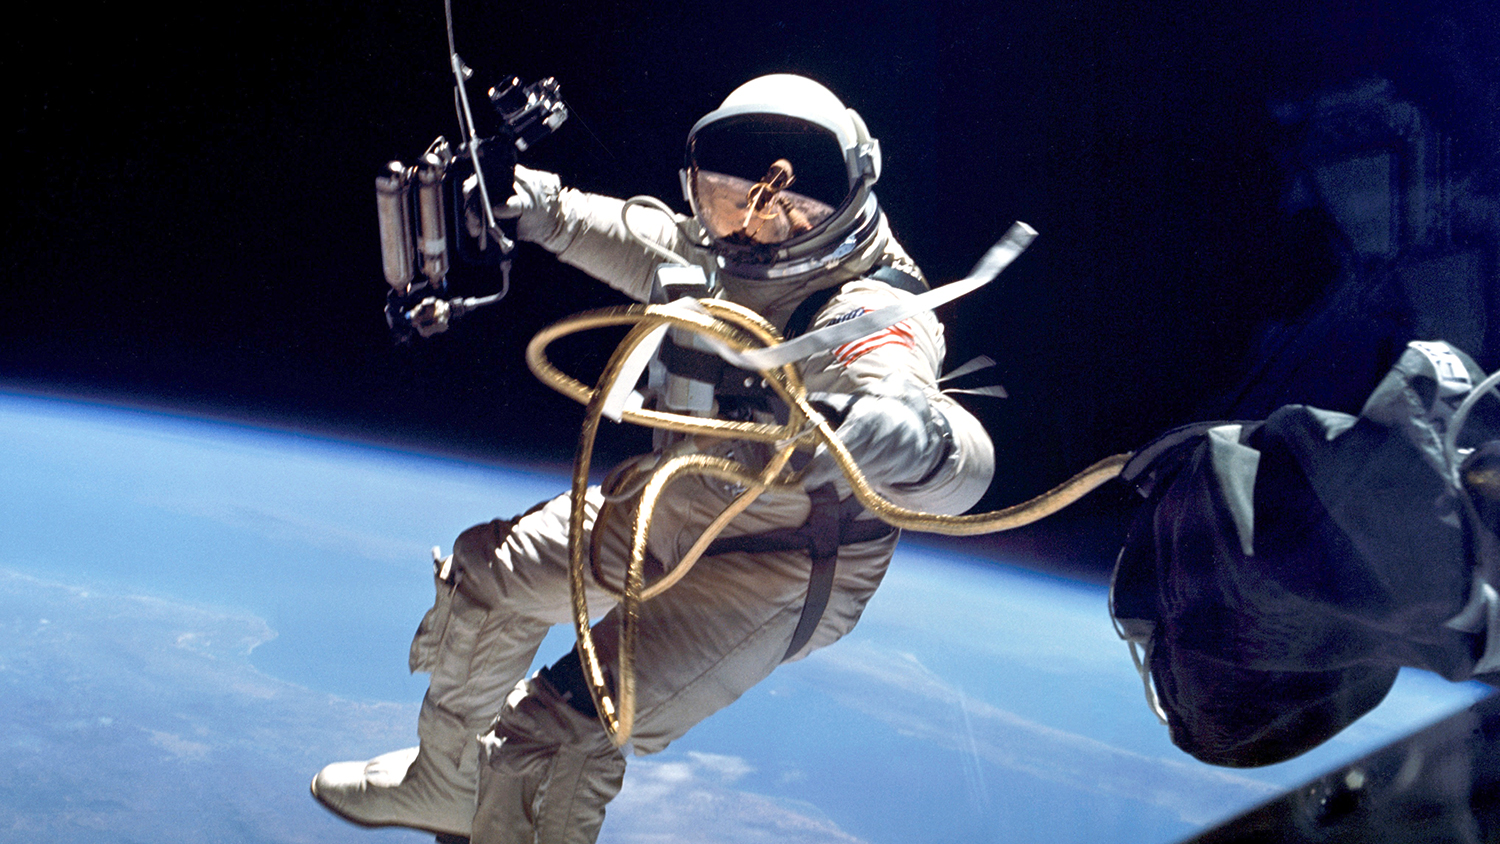 an astronaut on a spacewalk with Earth behind him